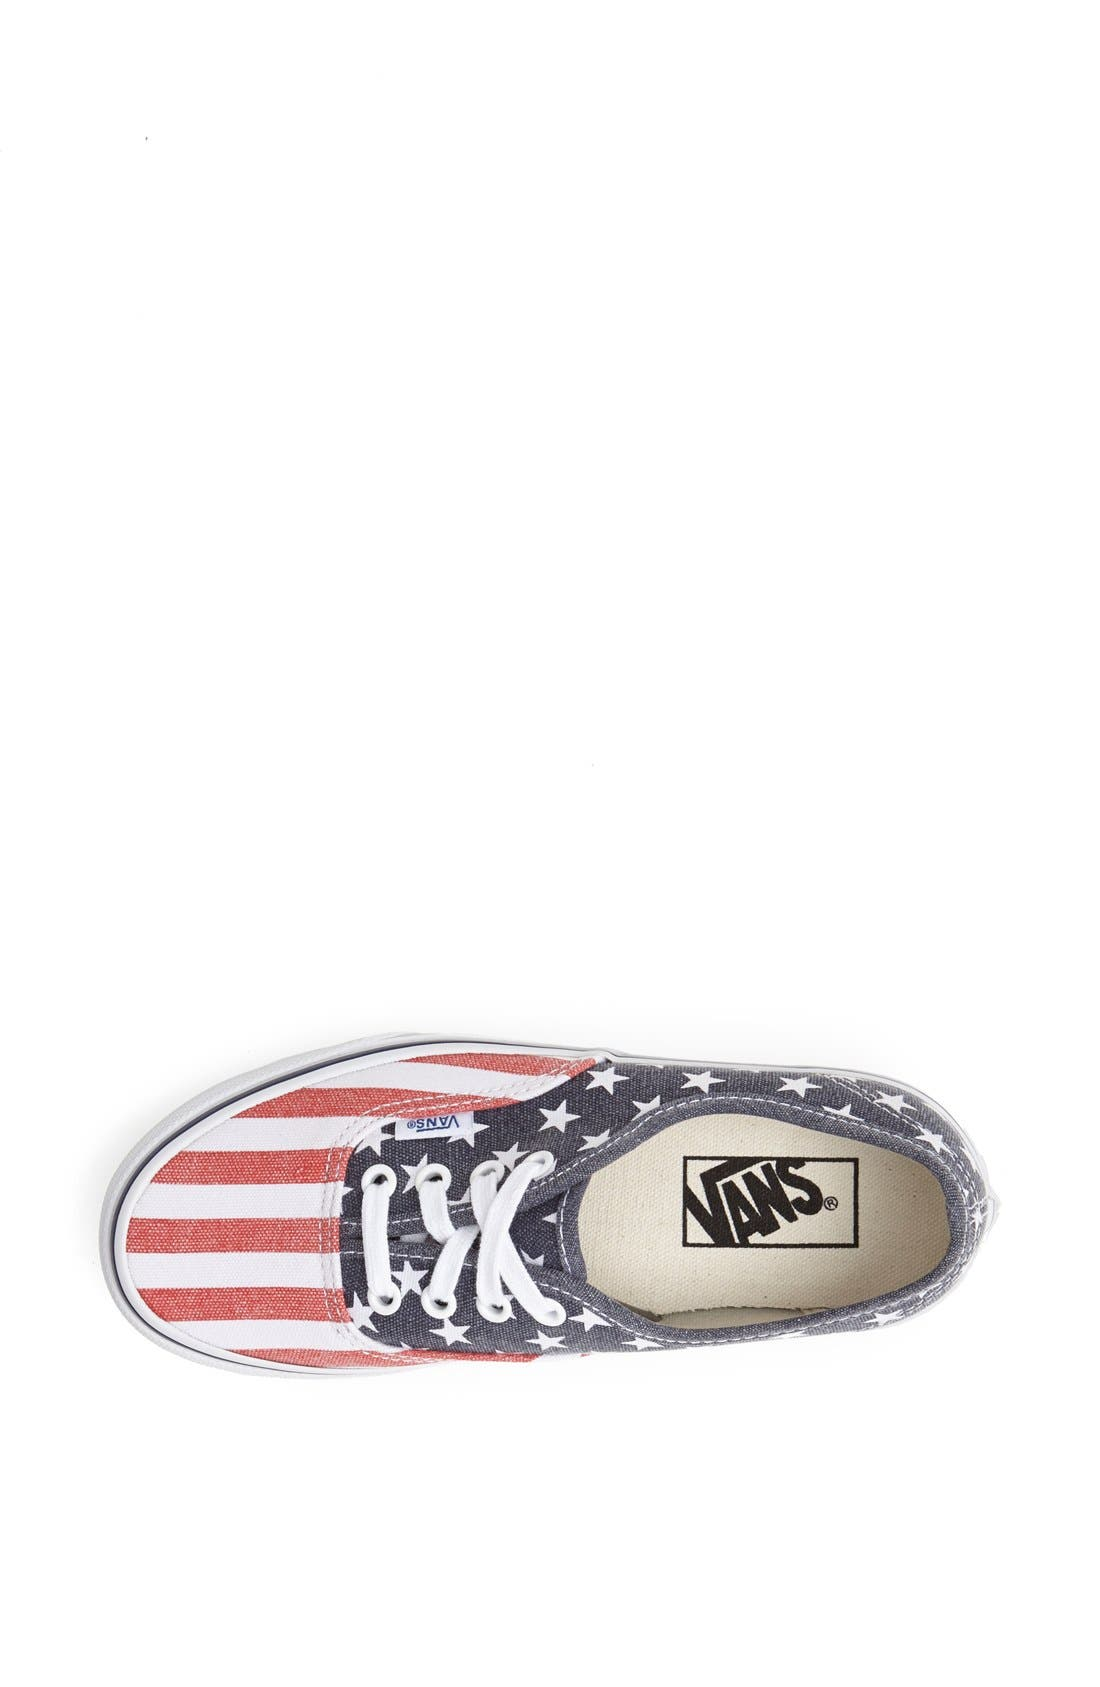 Alternate Image 3  - Vans 'Van Doren - Authentic' Sneaker (Women)